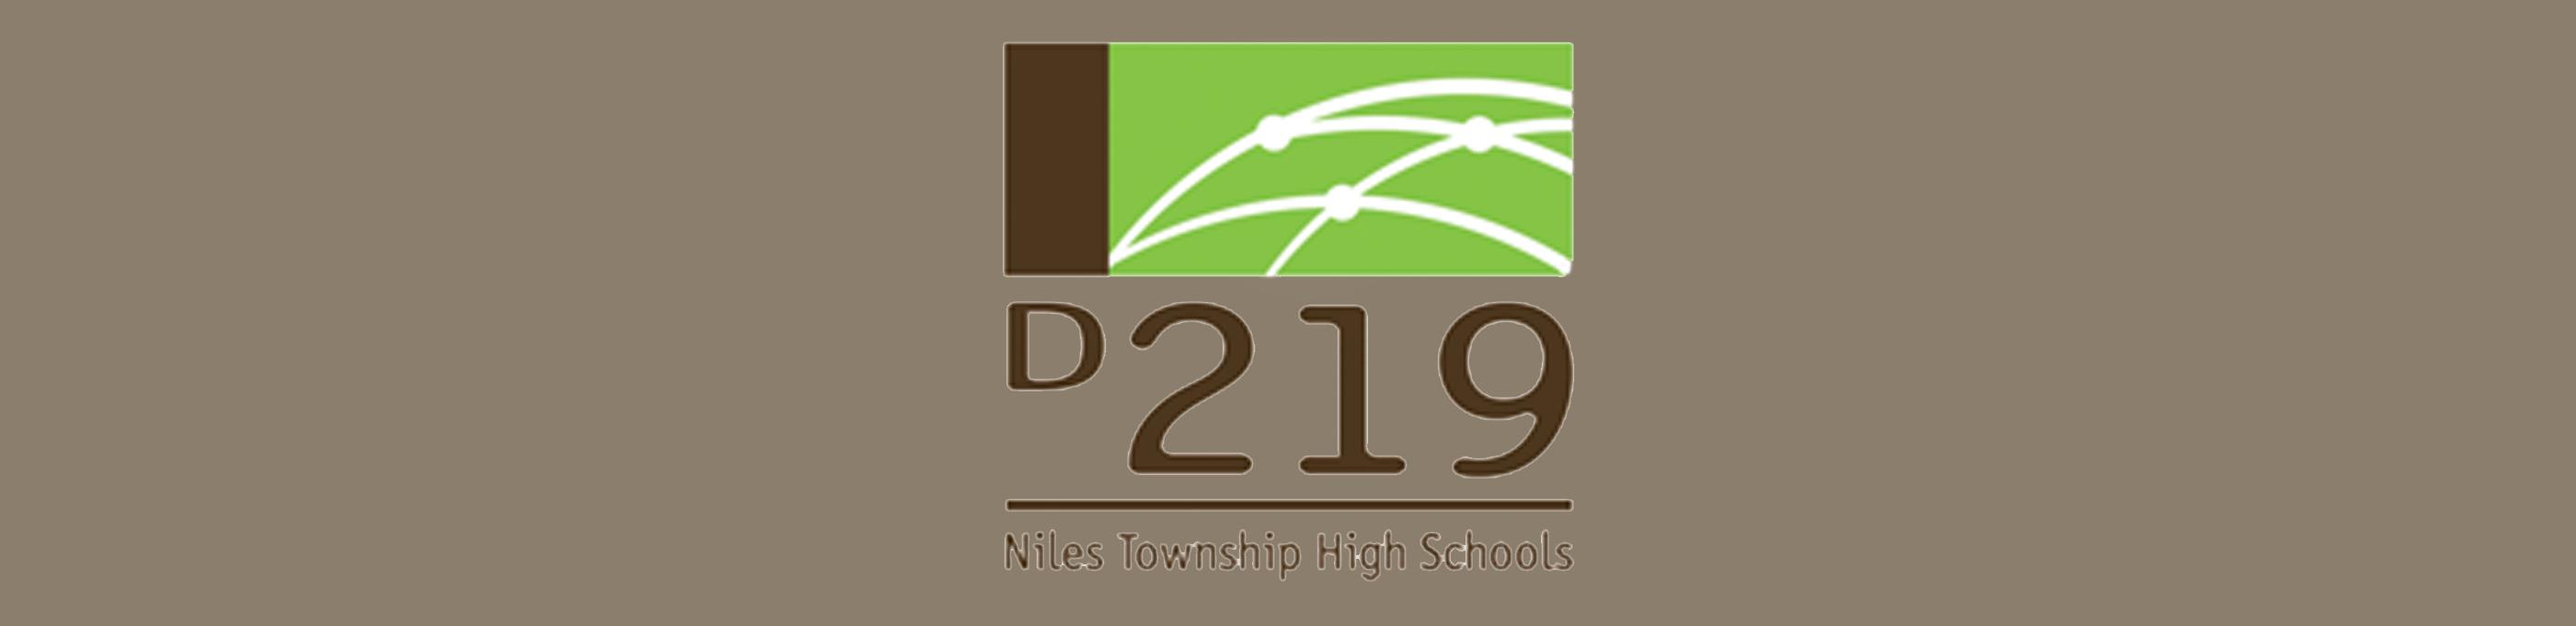 D219 Board of Education welcomes aboard new leadership